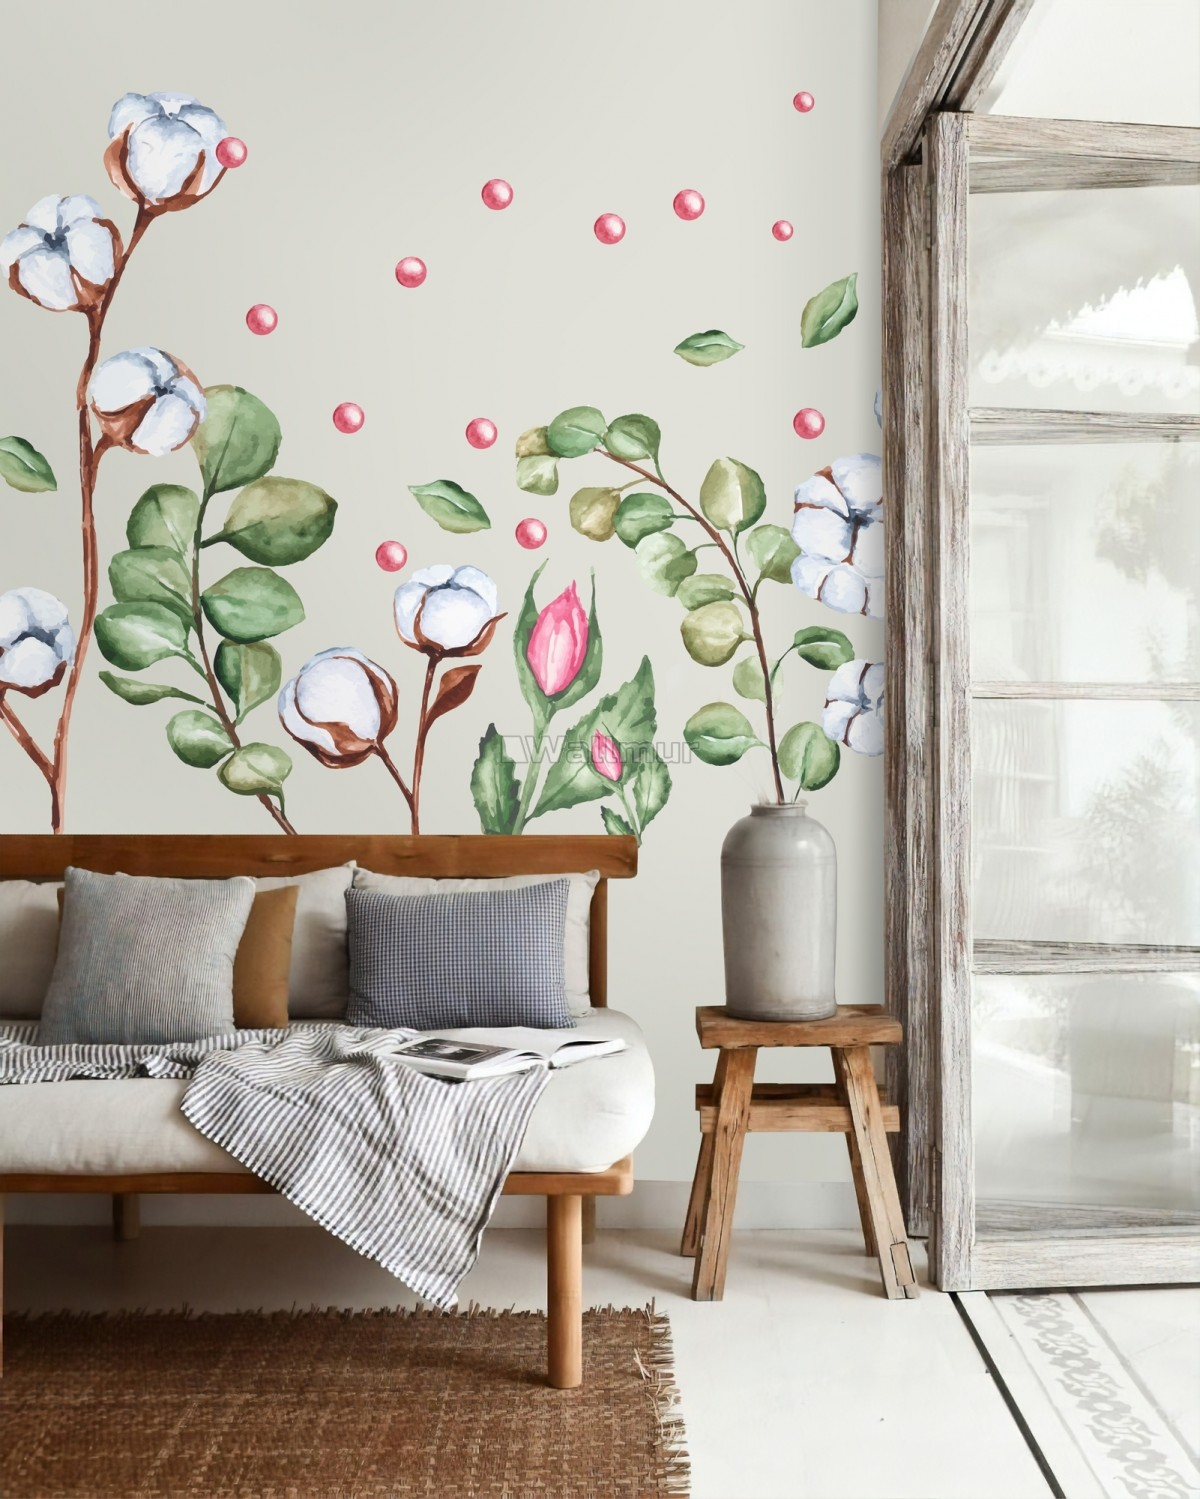 White Cotton Florals with Green Leaf and Pink Rosebud Wall Decal Sticker